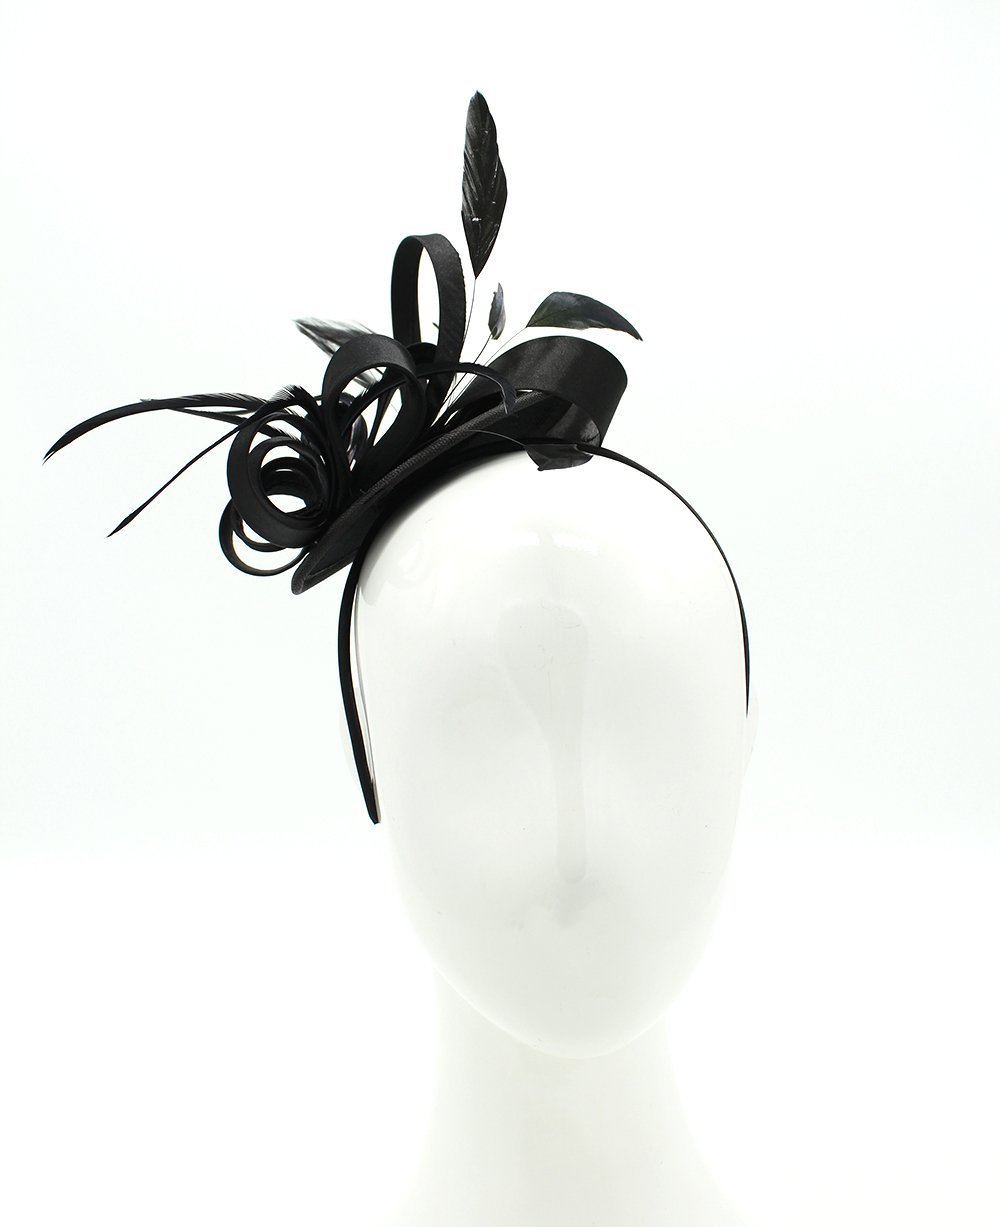 Felizhouse Fascinator Hats for Women Ladies Feather Cocktail Party Hats Bridal Headpieces Kentucky Derby Ascot Fascinator Headband (Black) by Felizhouse (Image #2)